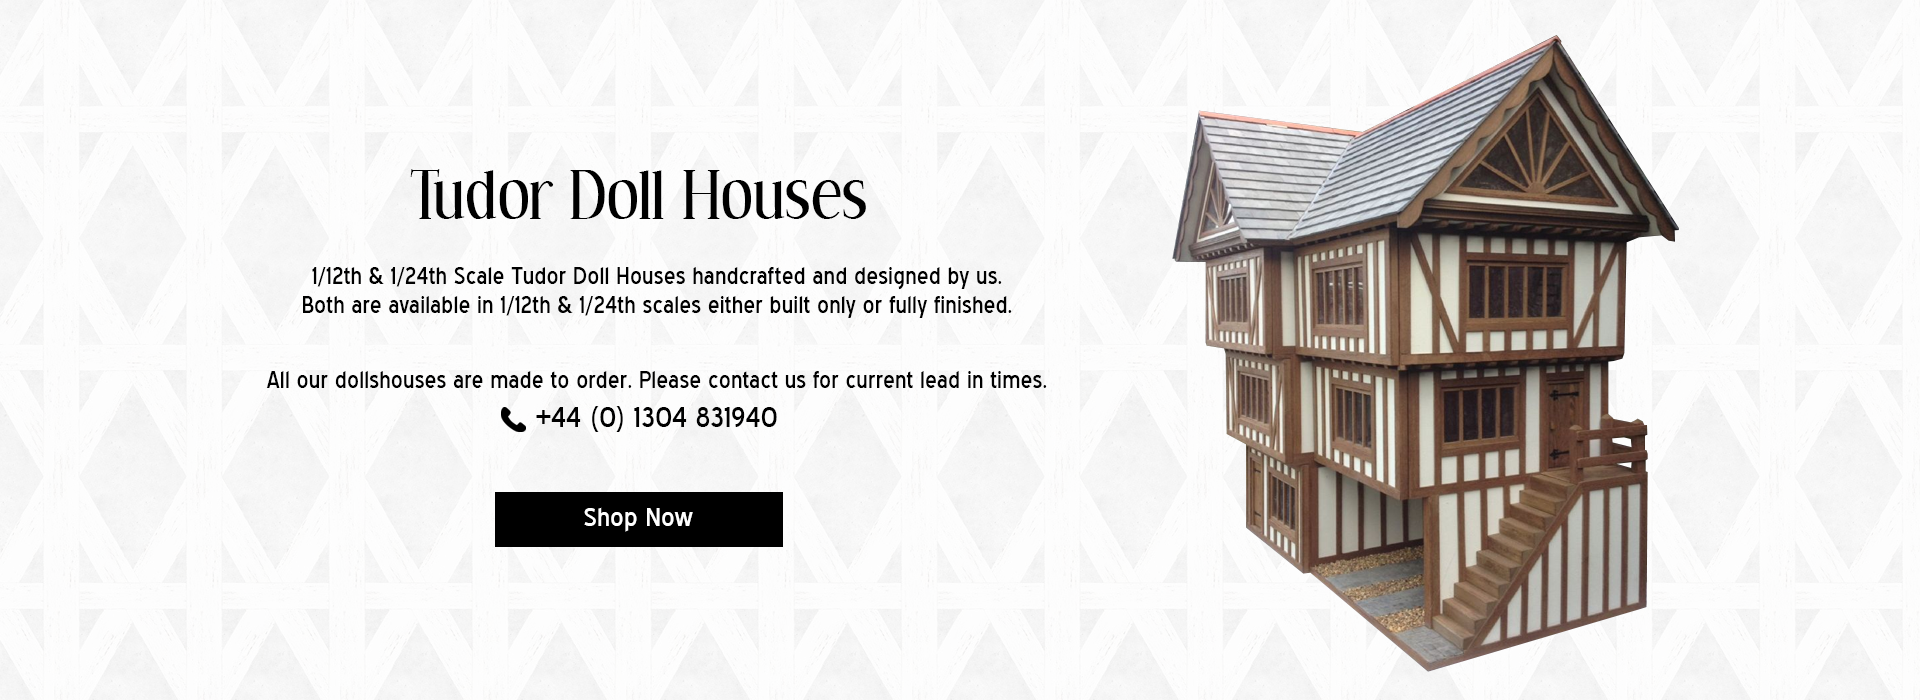 Tudor Doll Houses Banner